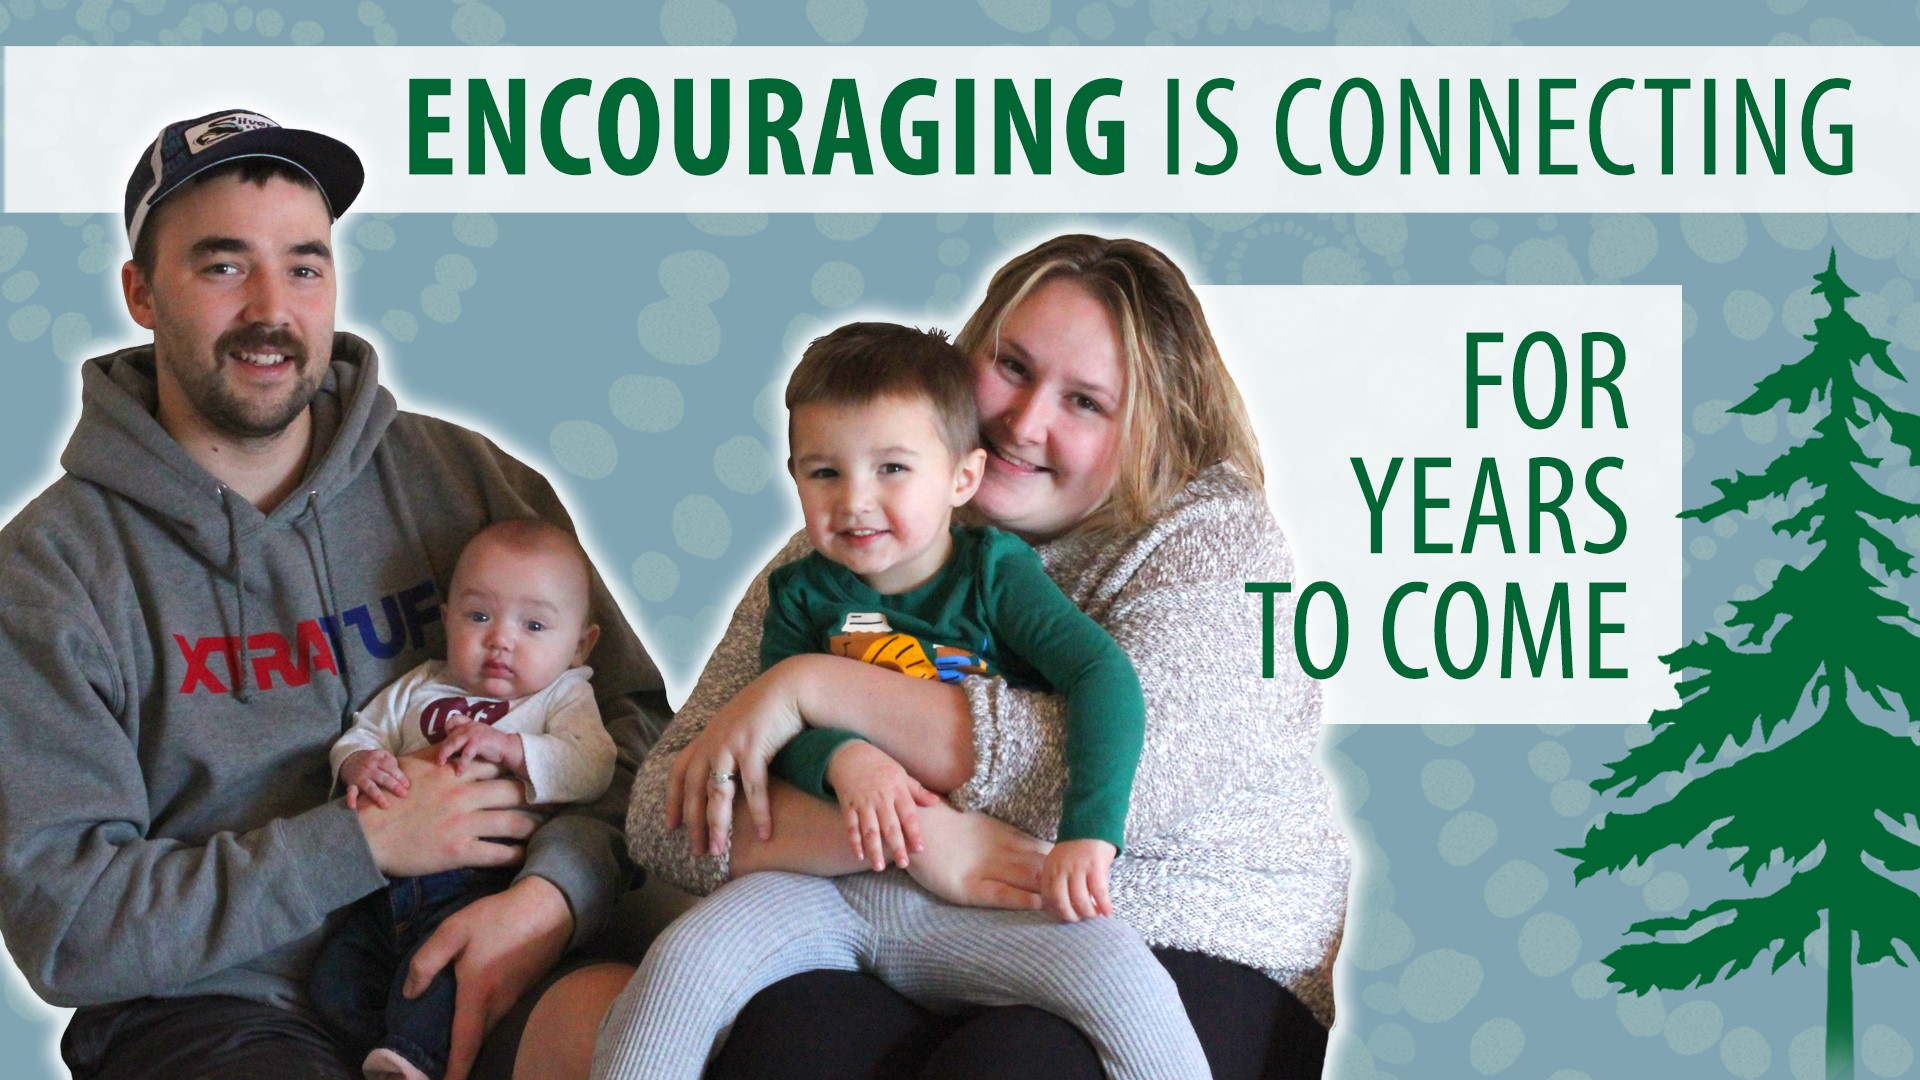 Encouraging is connecting